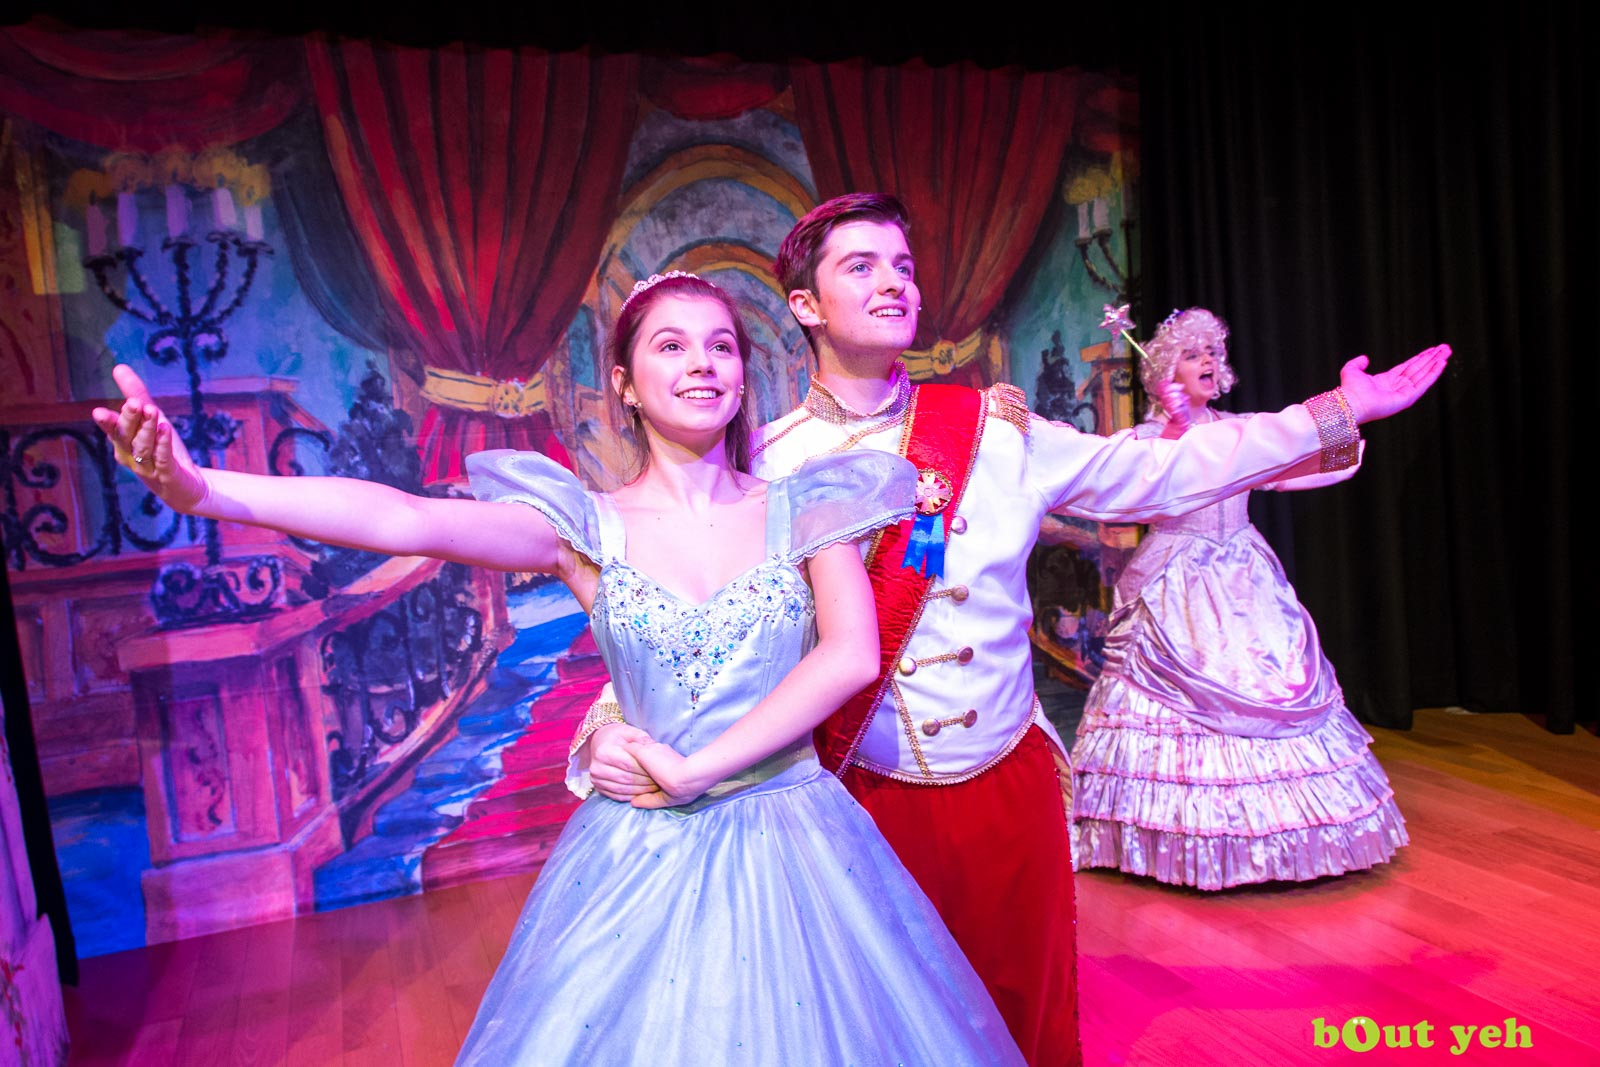 PR photographers Belfast portfolio photo 0075 of Cinderella pantomime at the Old Courthouse Theatre Antrim - Bout Yeh photography and video production services Belfast, Northern Ireland